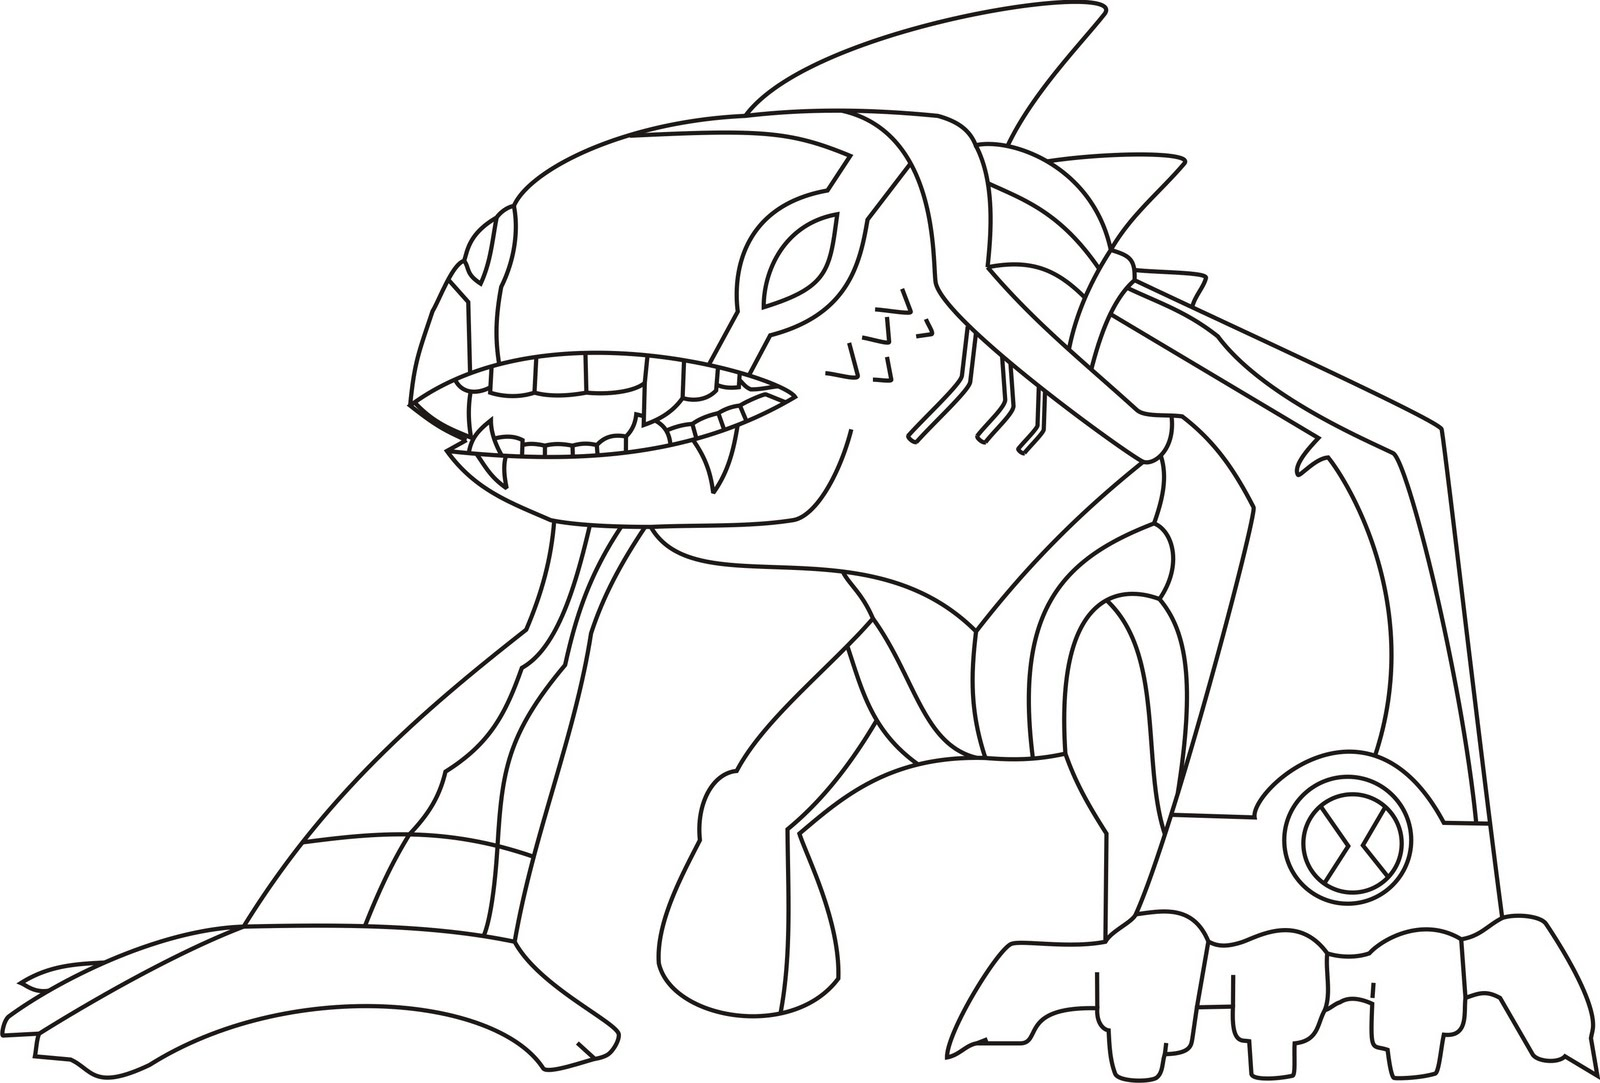 Ben 10 Alien Force Coloring Pages To Print Crokky Coloring Pages